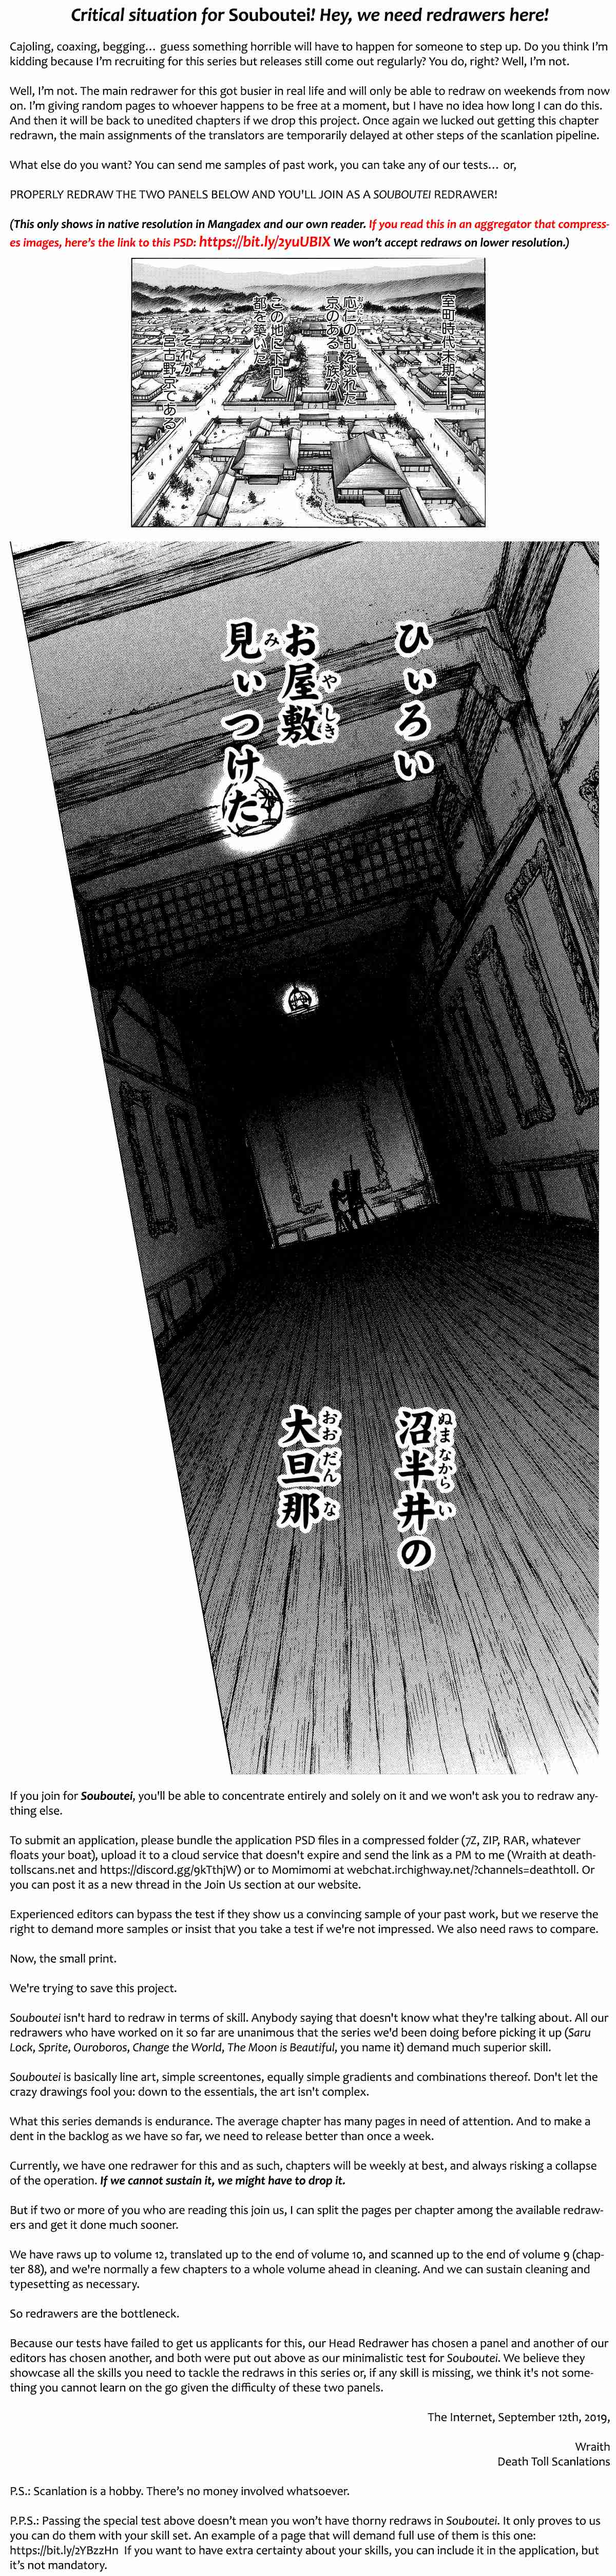 Souboutei Kowasu Beshi Vol. 9 Ch. 80 Courage